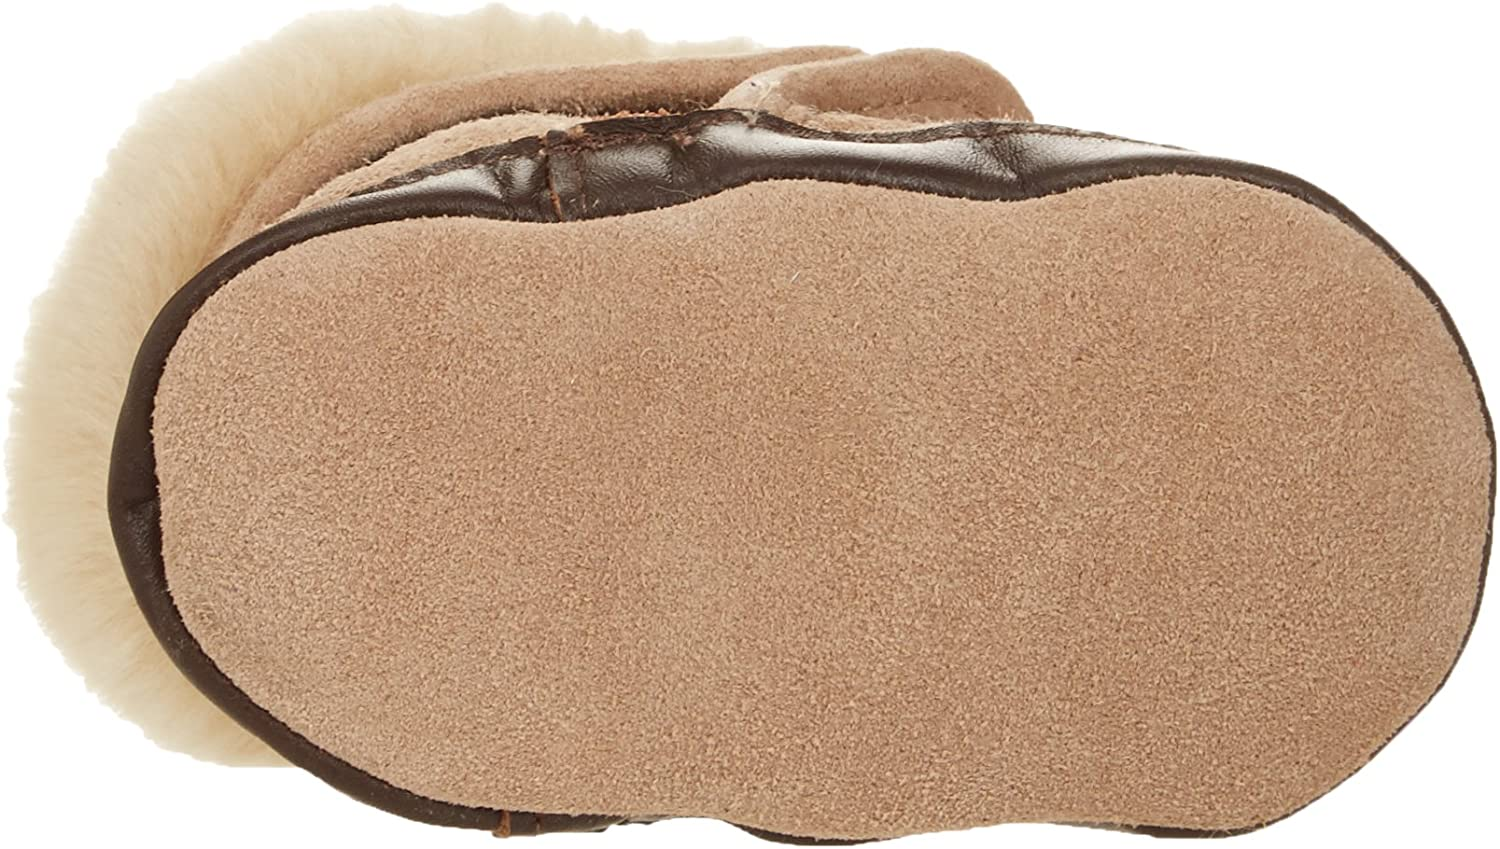 Brown Robeez Cozy Ankle Baby Boots Soft Soles 12-18 Months